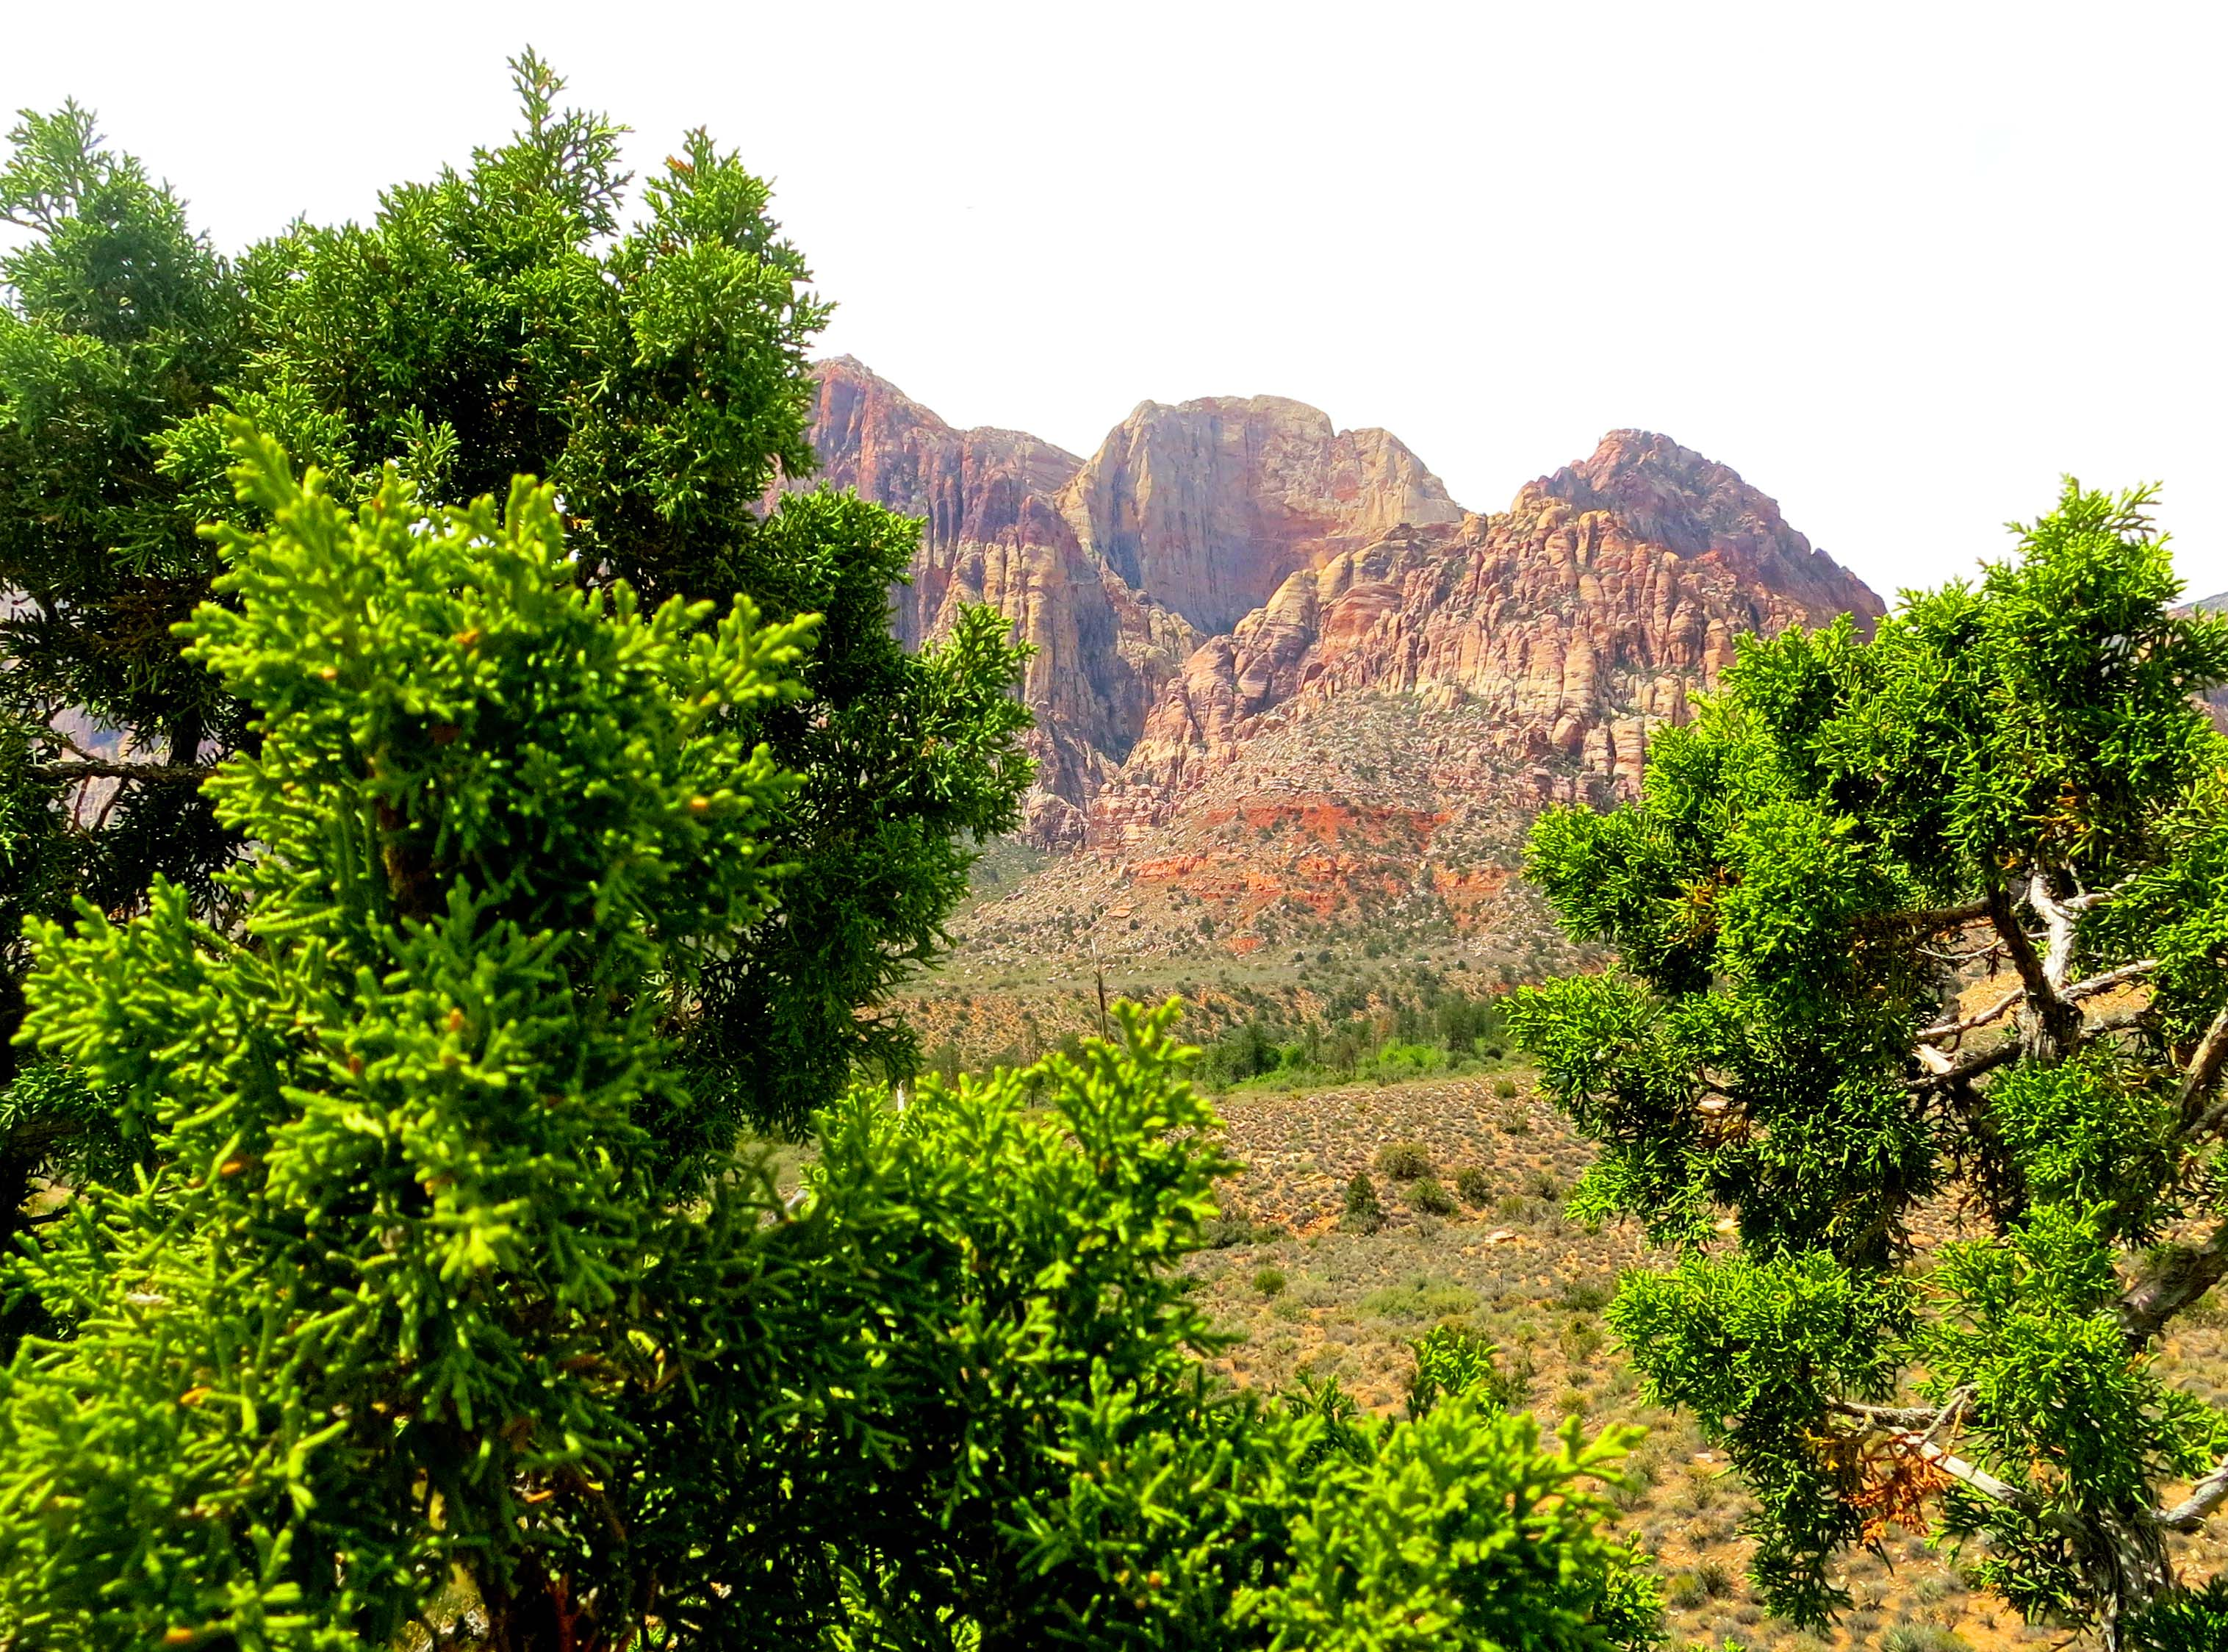 Mountains in Red Rock Canyon National Conservation Area framed by a juniper tree.